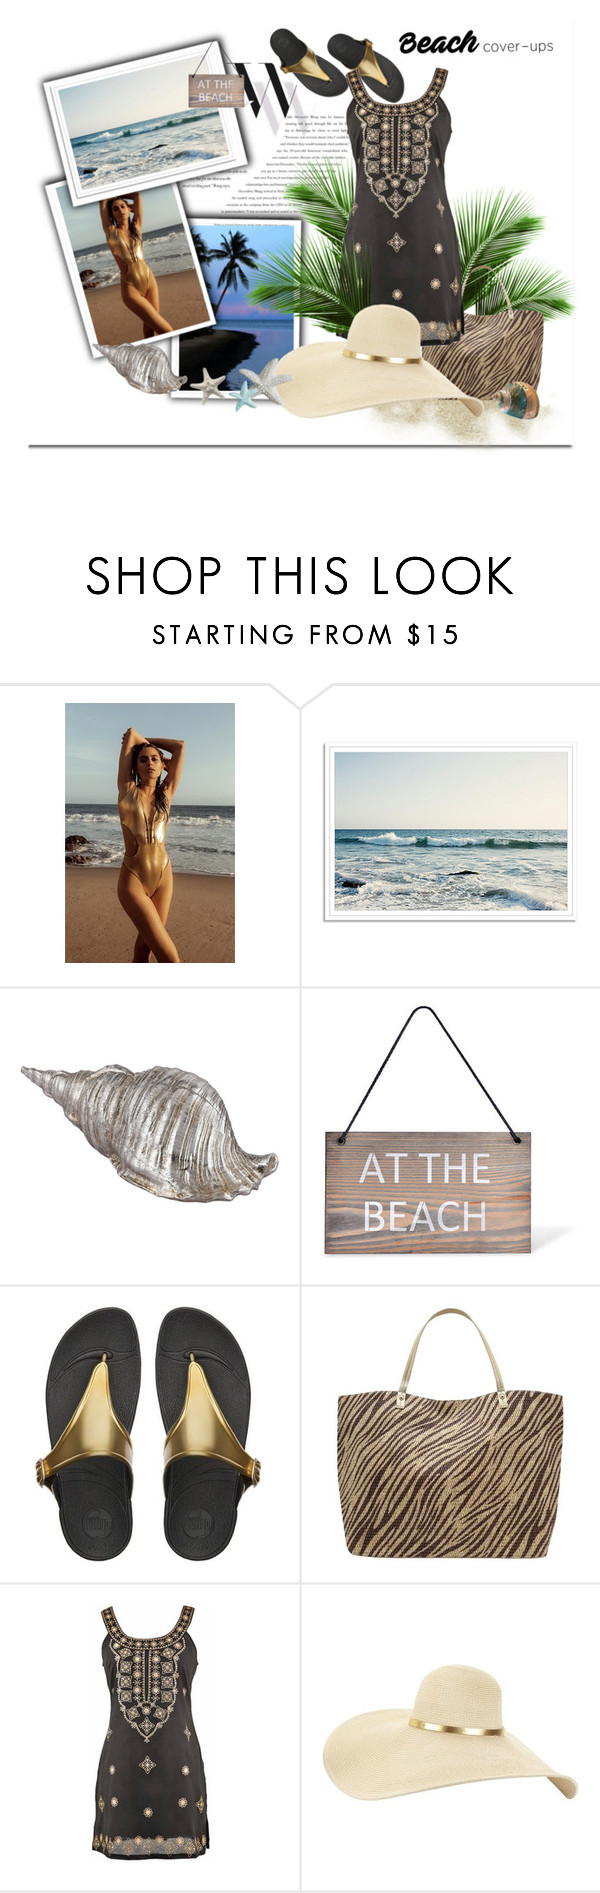 """Beach coverups"" by dee-dee-01 ❤ liked on Polyvore featuring Balenciaga, Topshop, Garden Trading, FitFlop, M&Co and coverups"